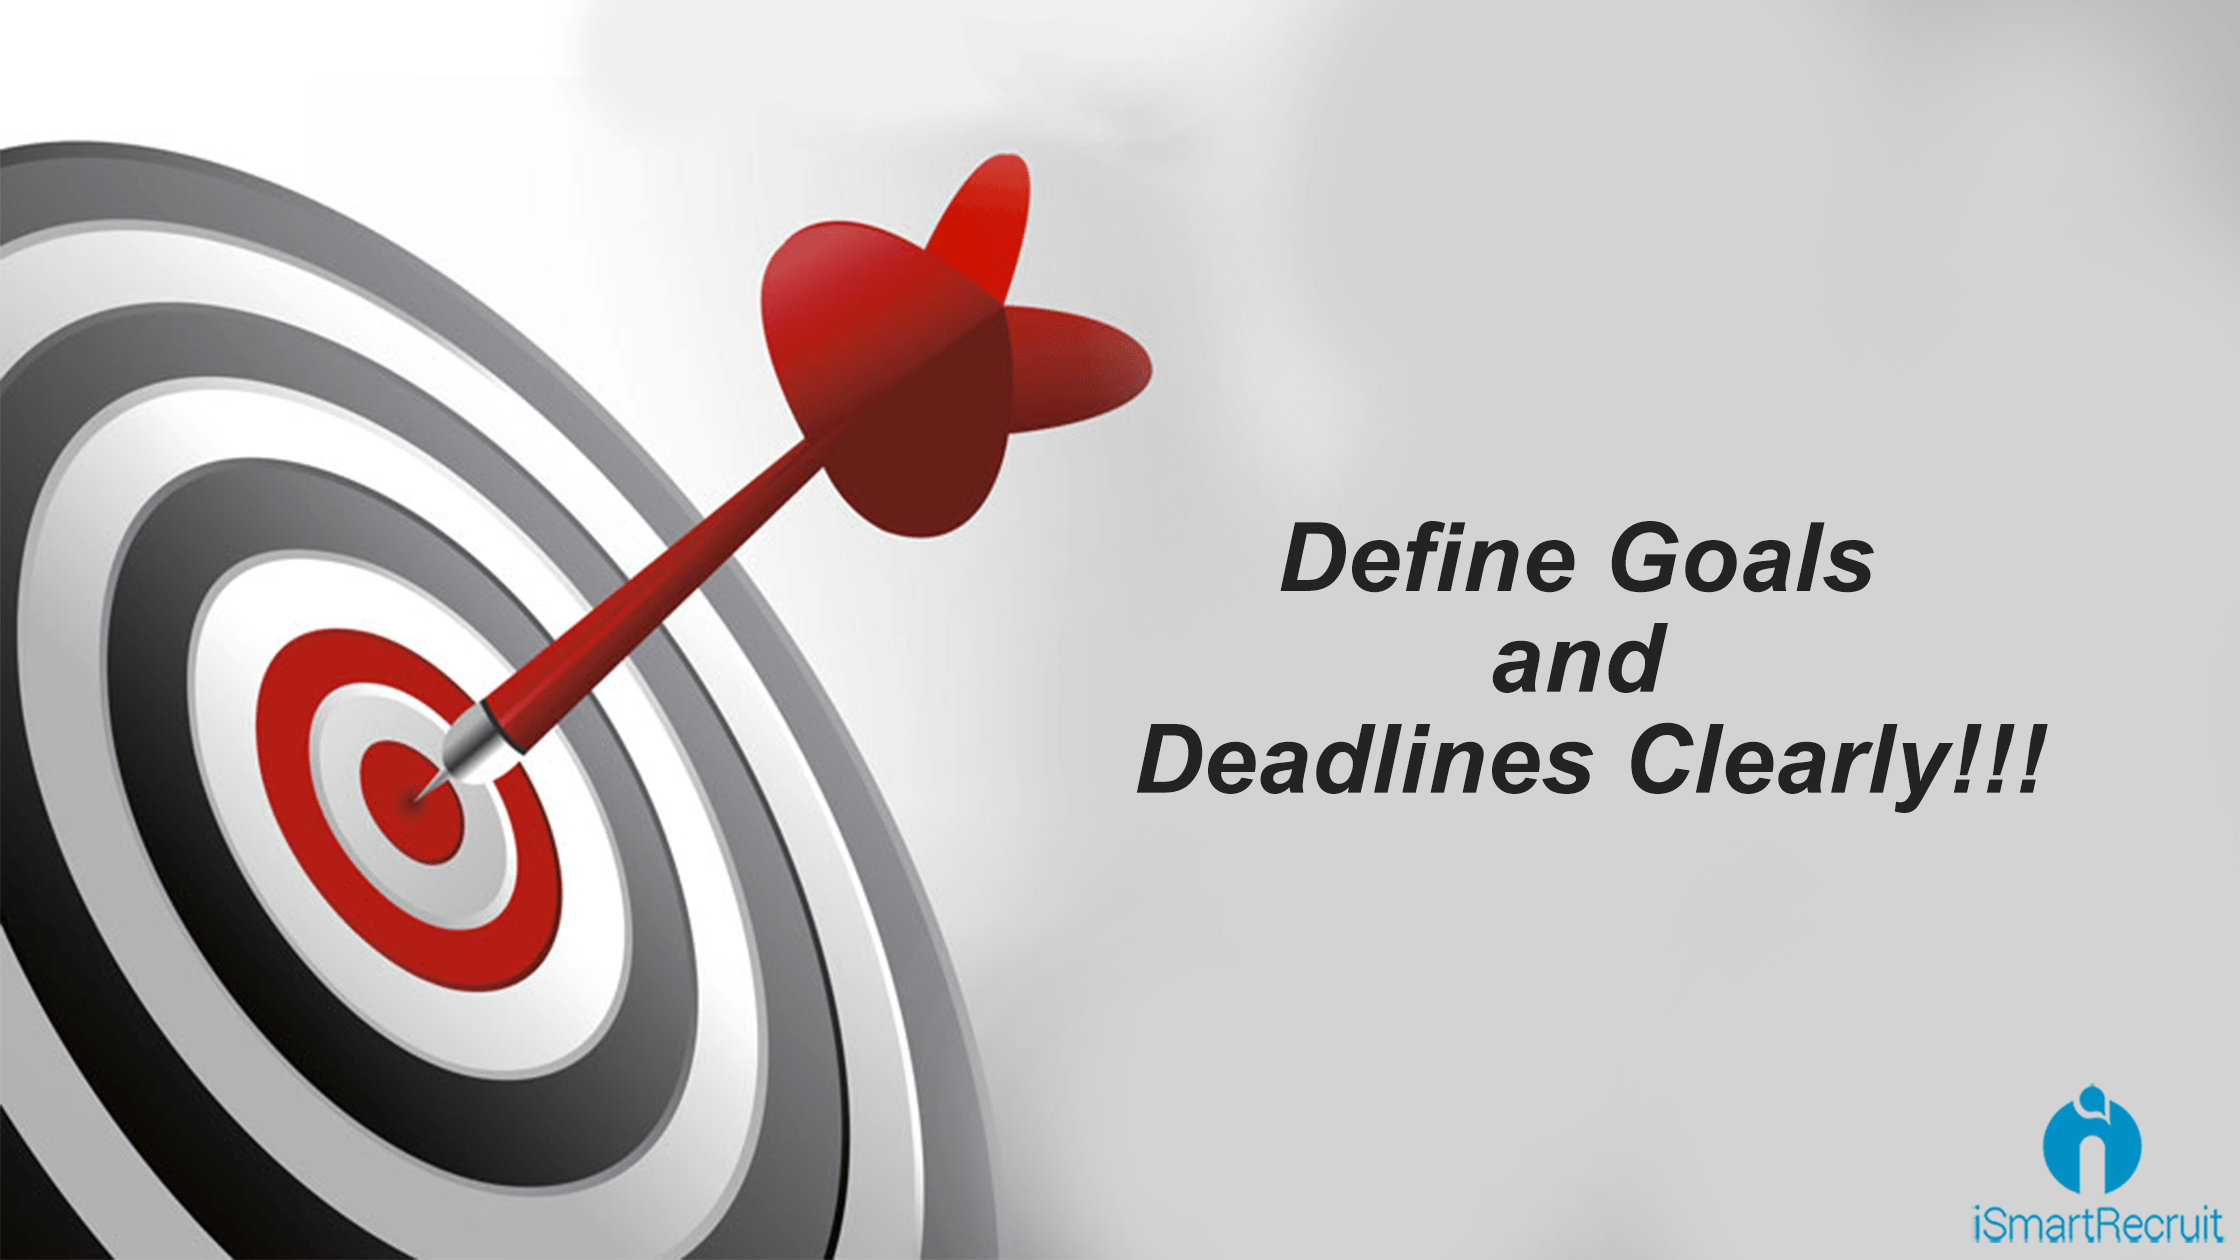 Clearly define goals and deadlines